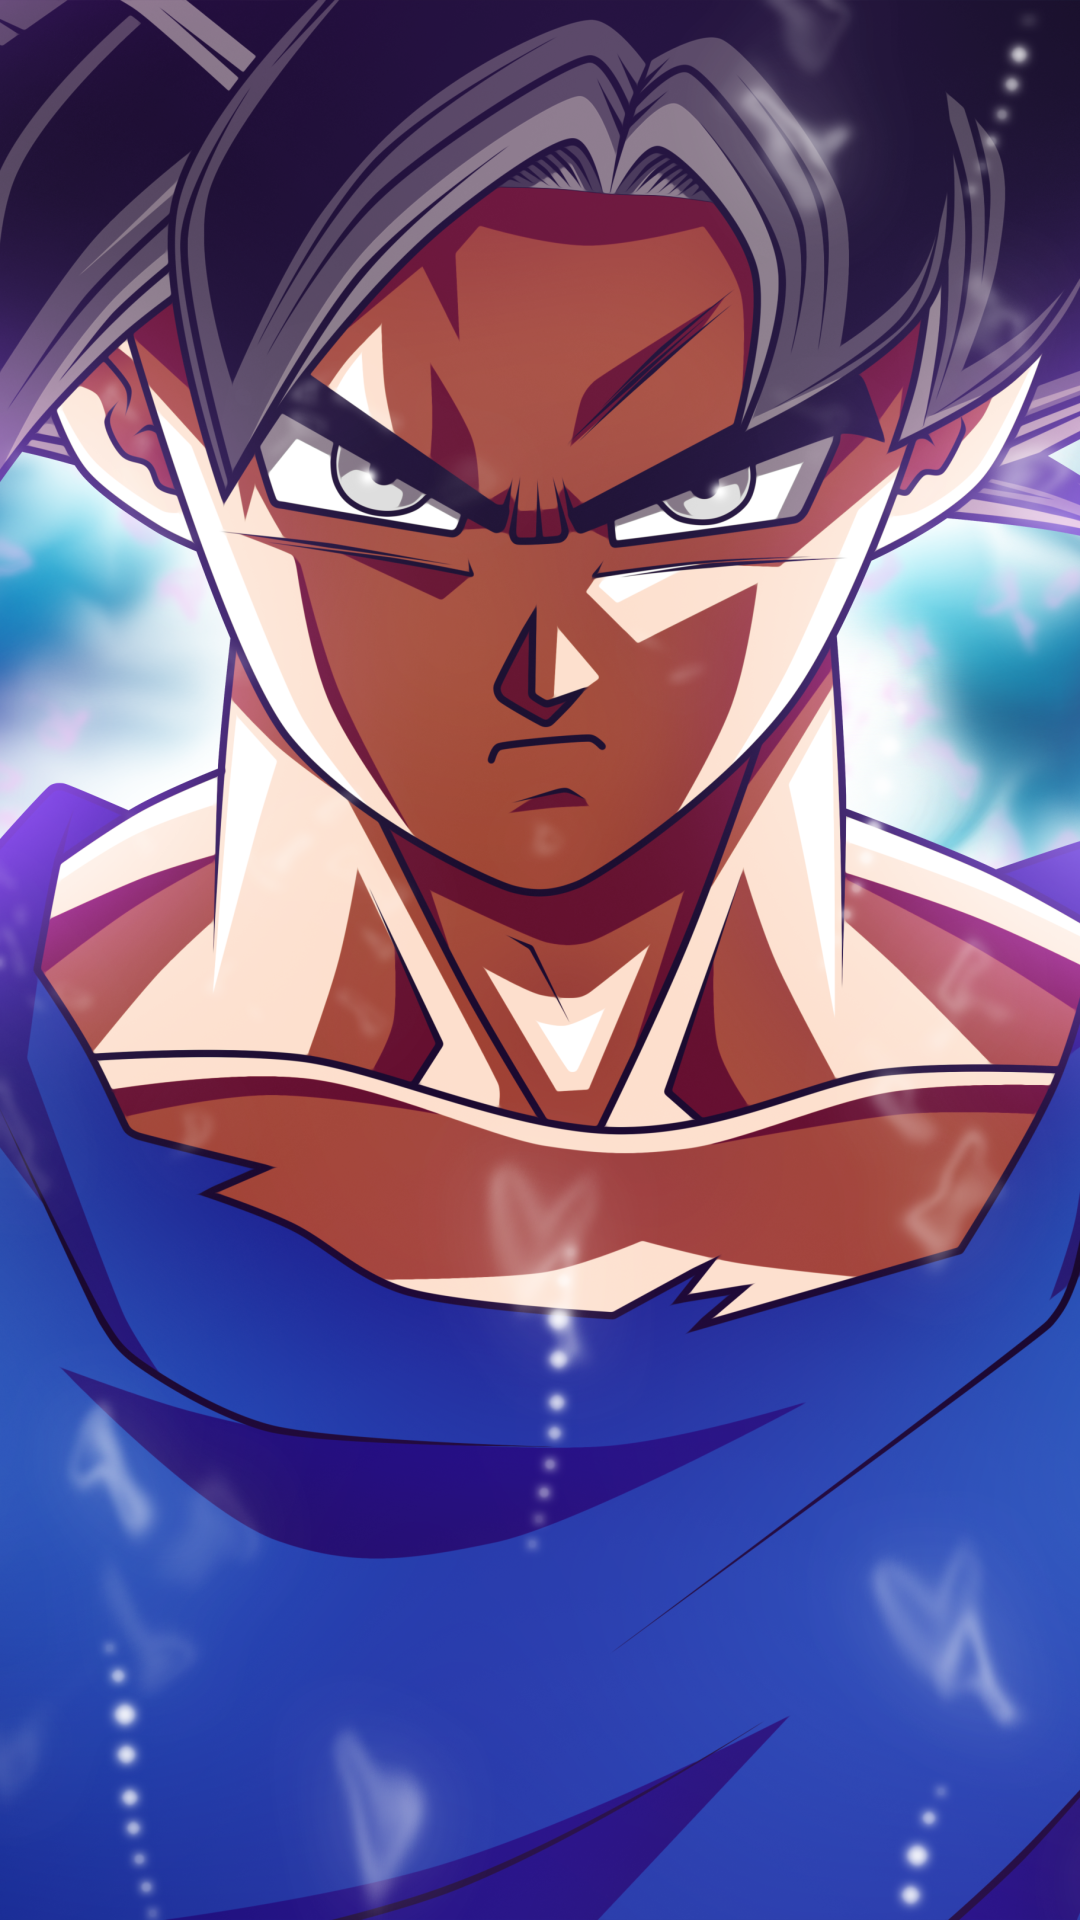 Anime Dragon Ball Super 1080x1920 Wallpaper Id 702076 Mobile